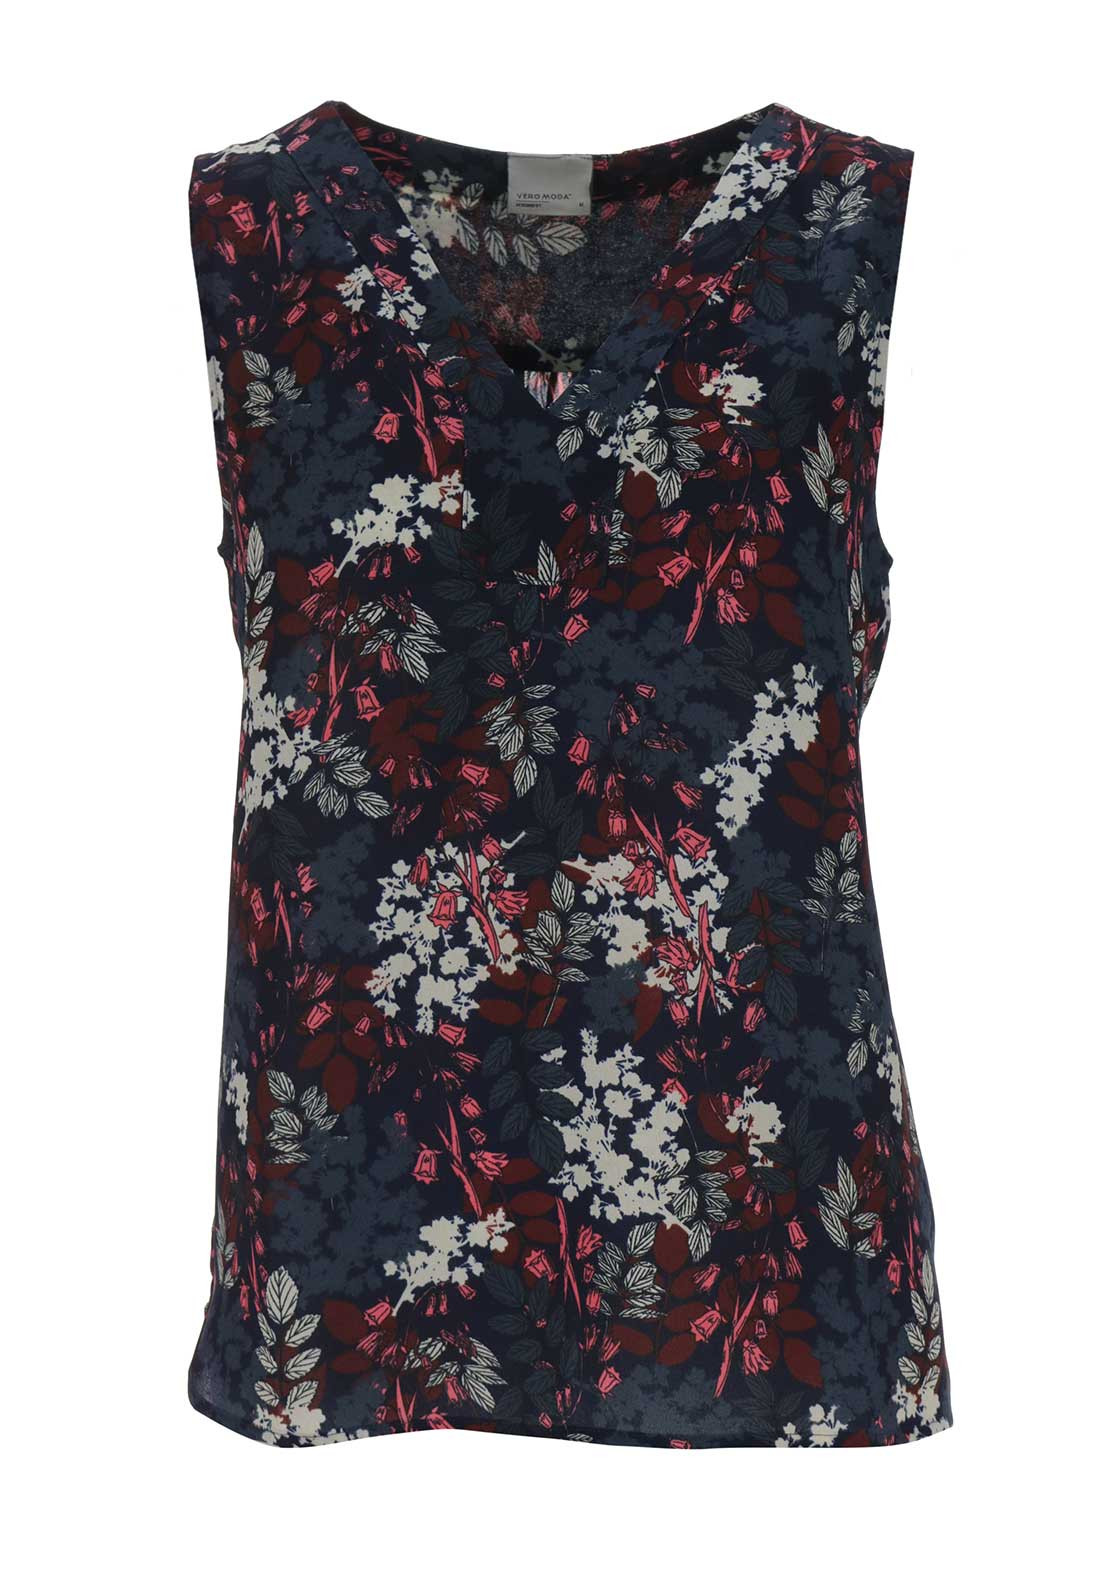 Vero Moda Forrest Leaf V Neck Top, Navy